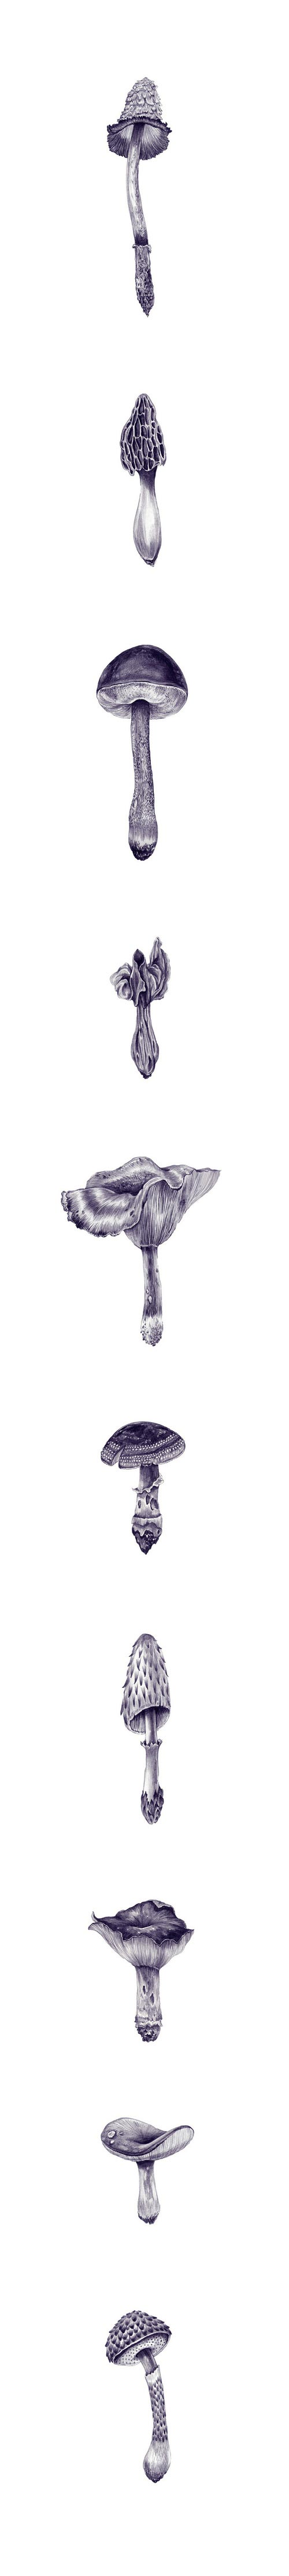 Drawings by artist Eibatova Karina